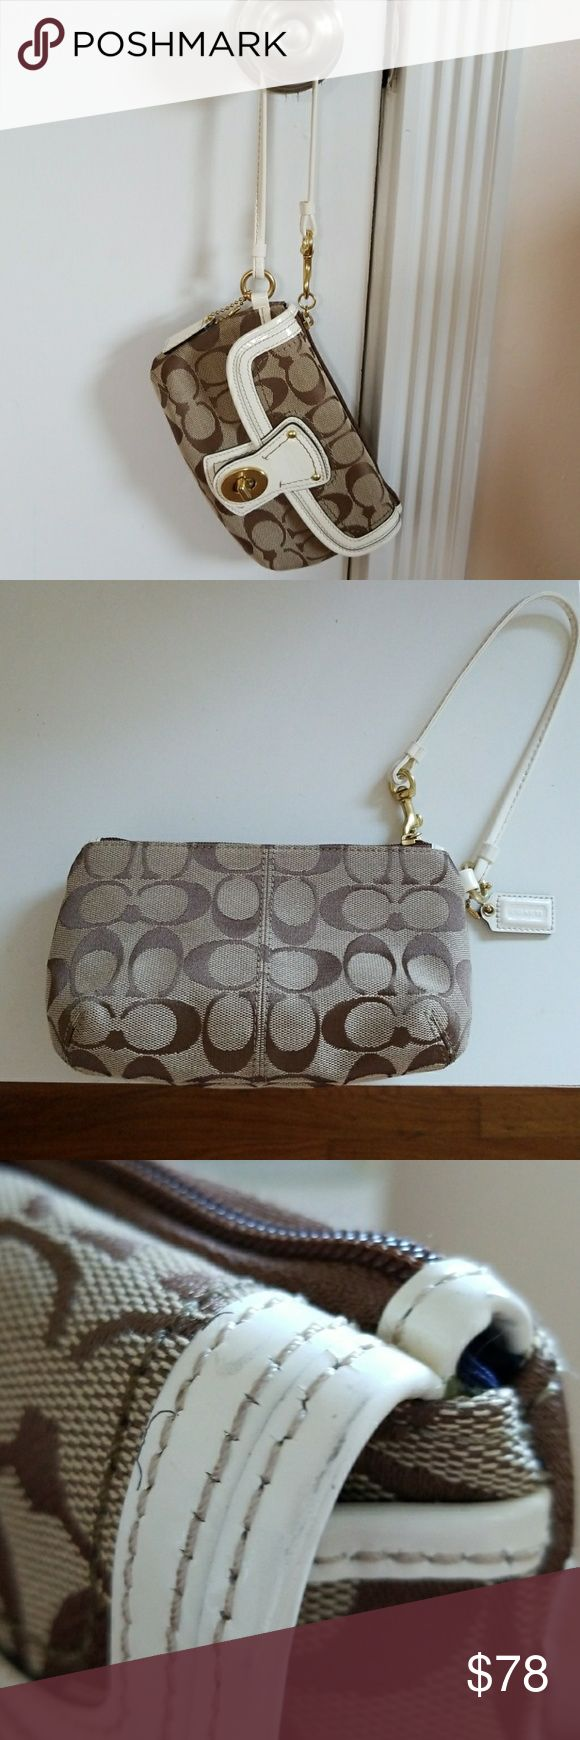 "Coach Legacy Signature Turnlock Wristlet Inside/Outside clean ~ Approx : 7.5"" x 4.5"" Coach Bags Clutches & Wristlets"